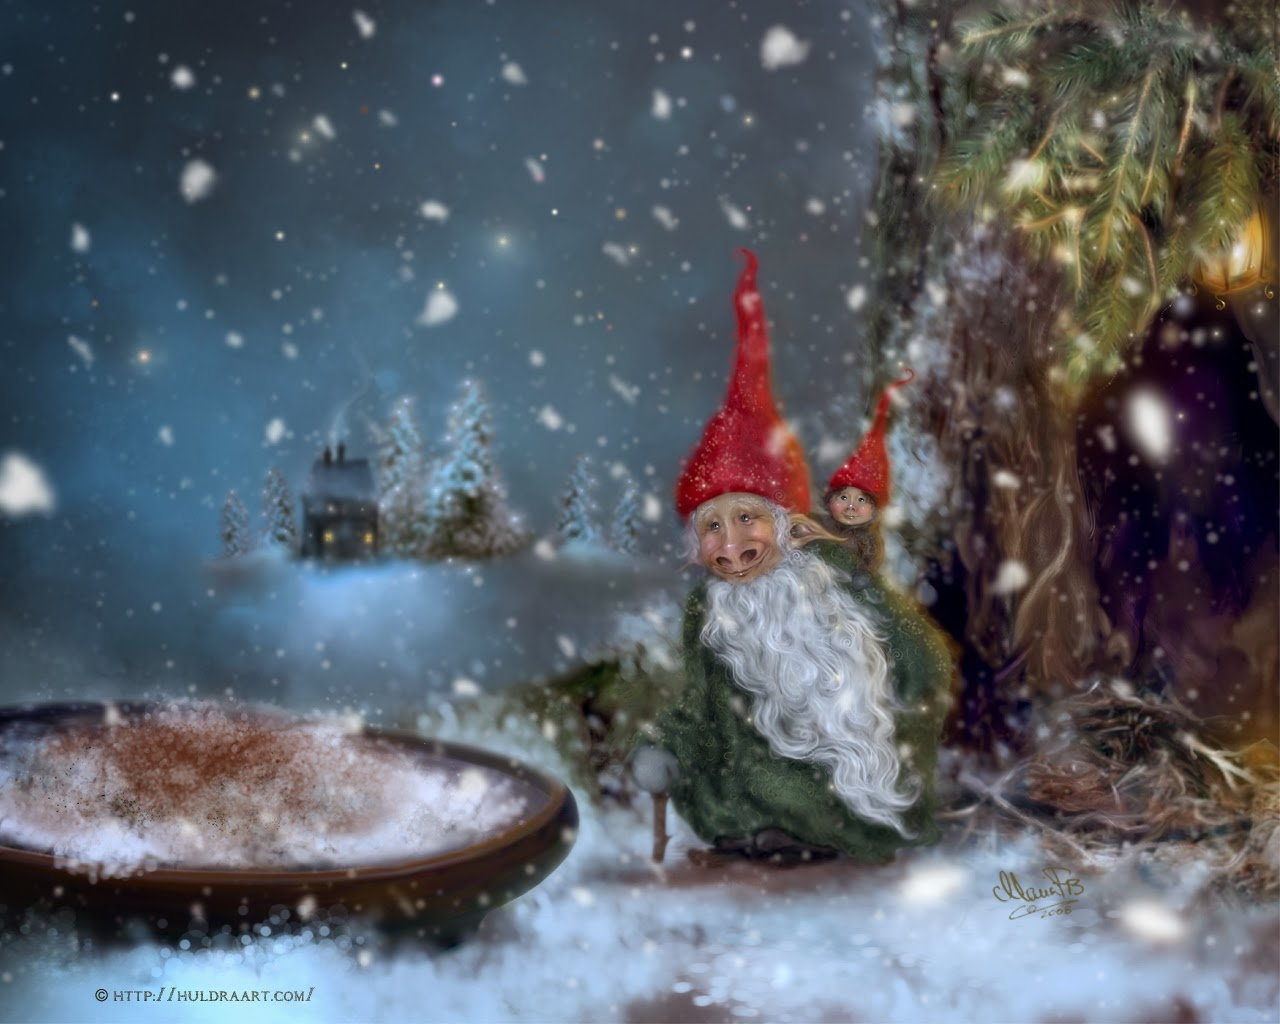 Christmas Is Awesome And So Should You: 12- Tomte/Nisse on yule lads, ded moroz, father christmas, santa claus, christmas elf, la befana, yule goat, christmas mountains,